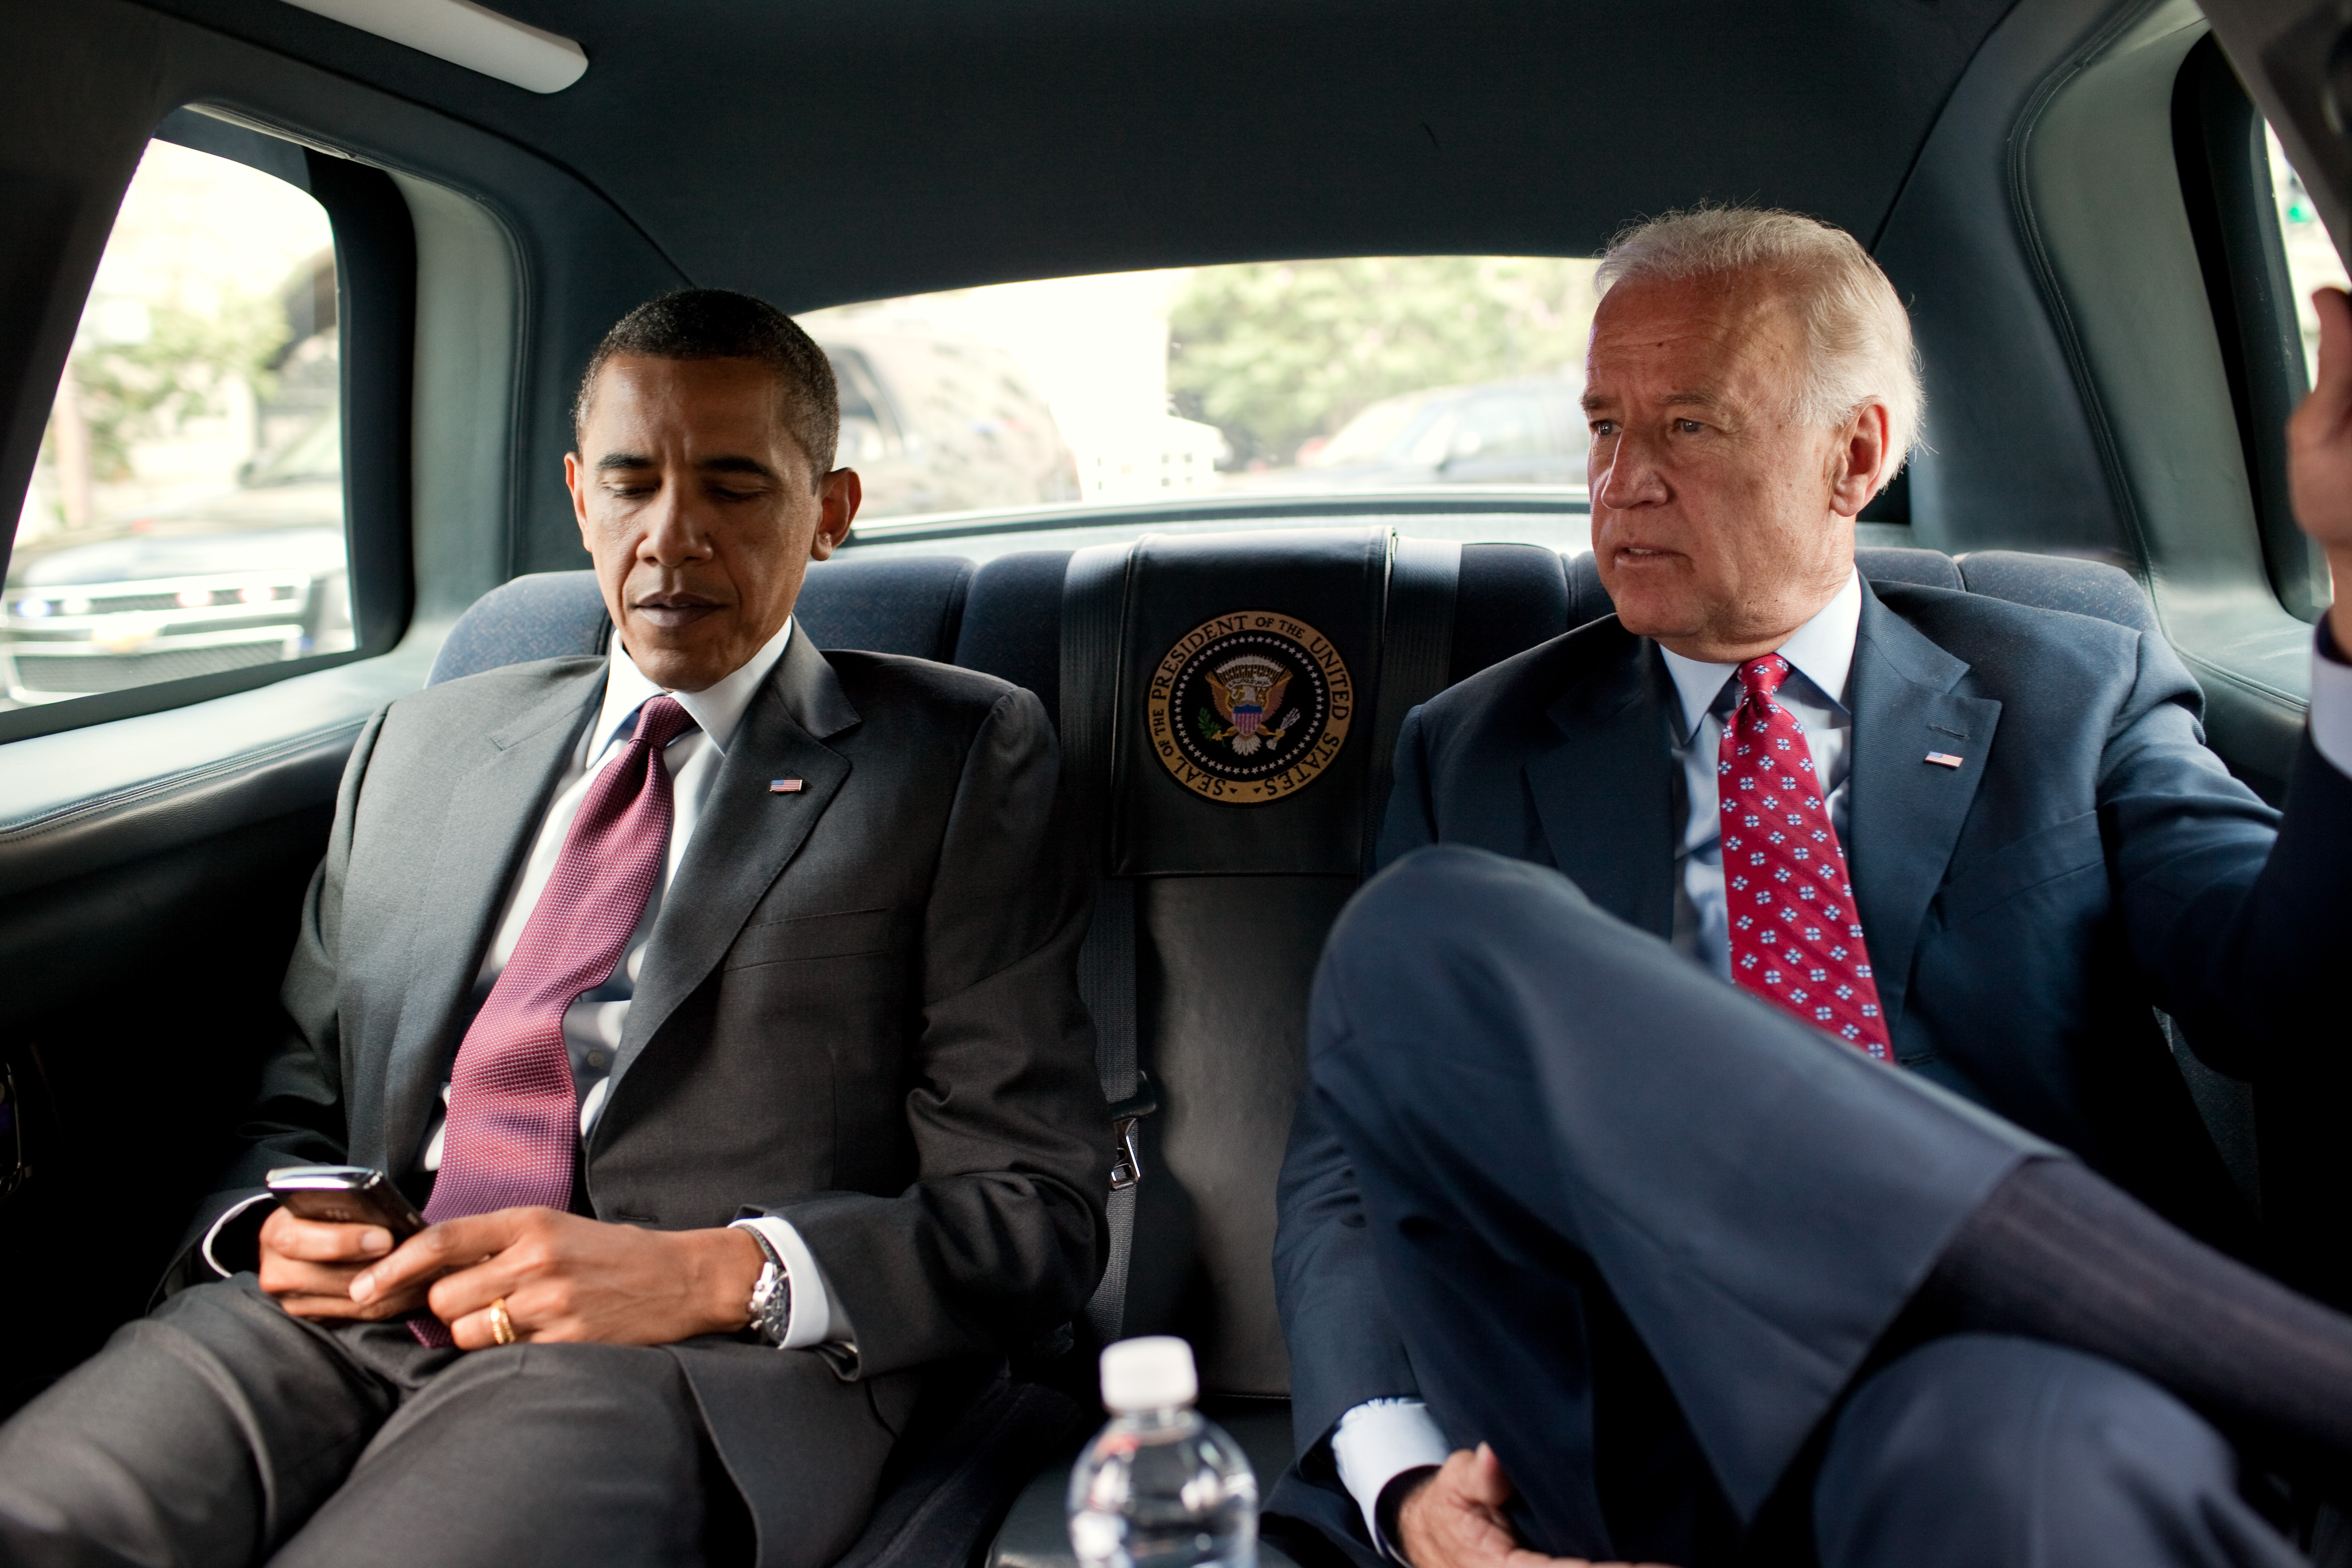 Obama and Biden in Limo